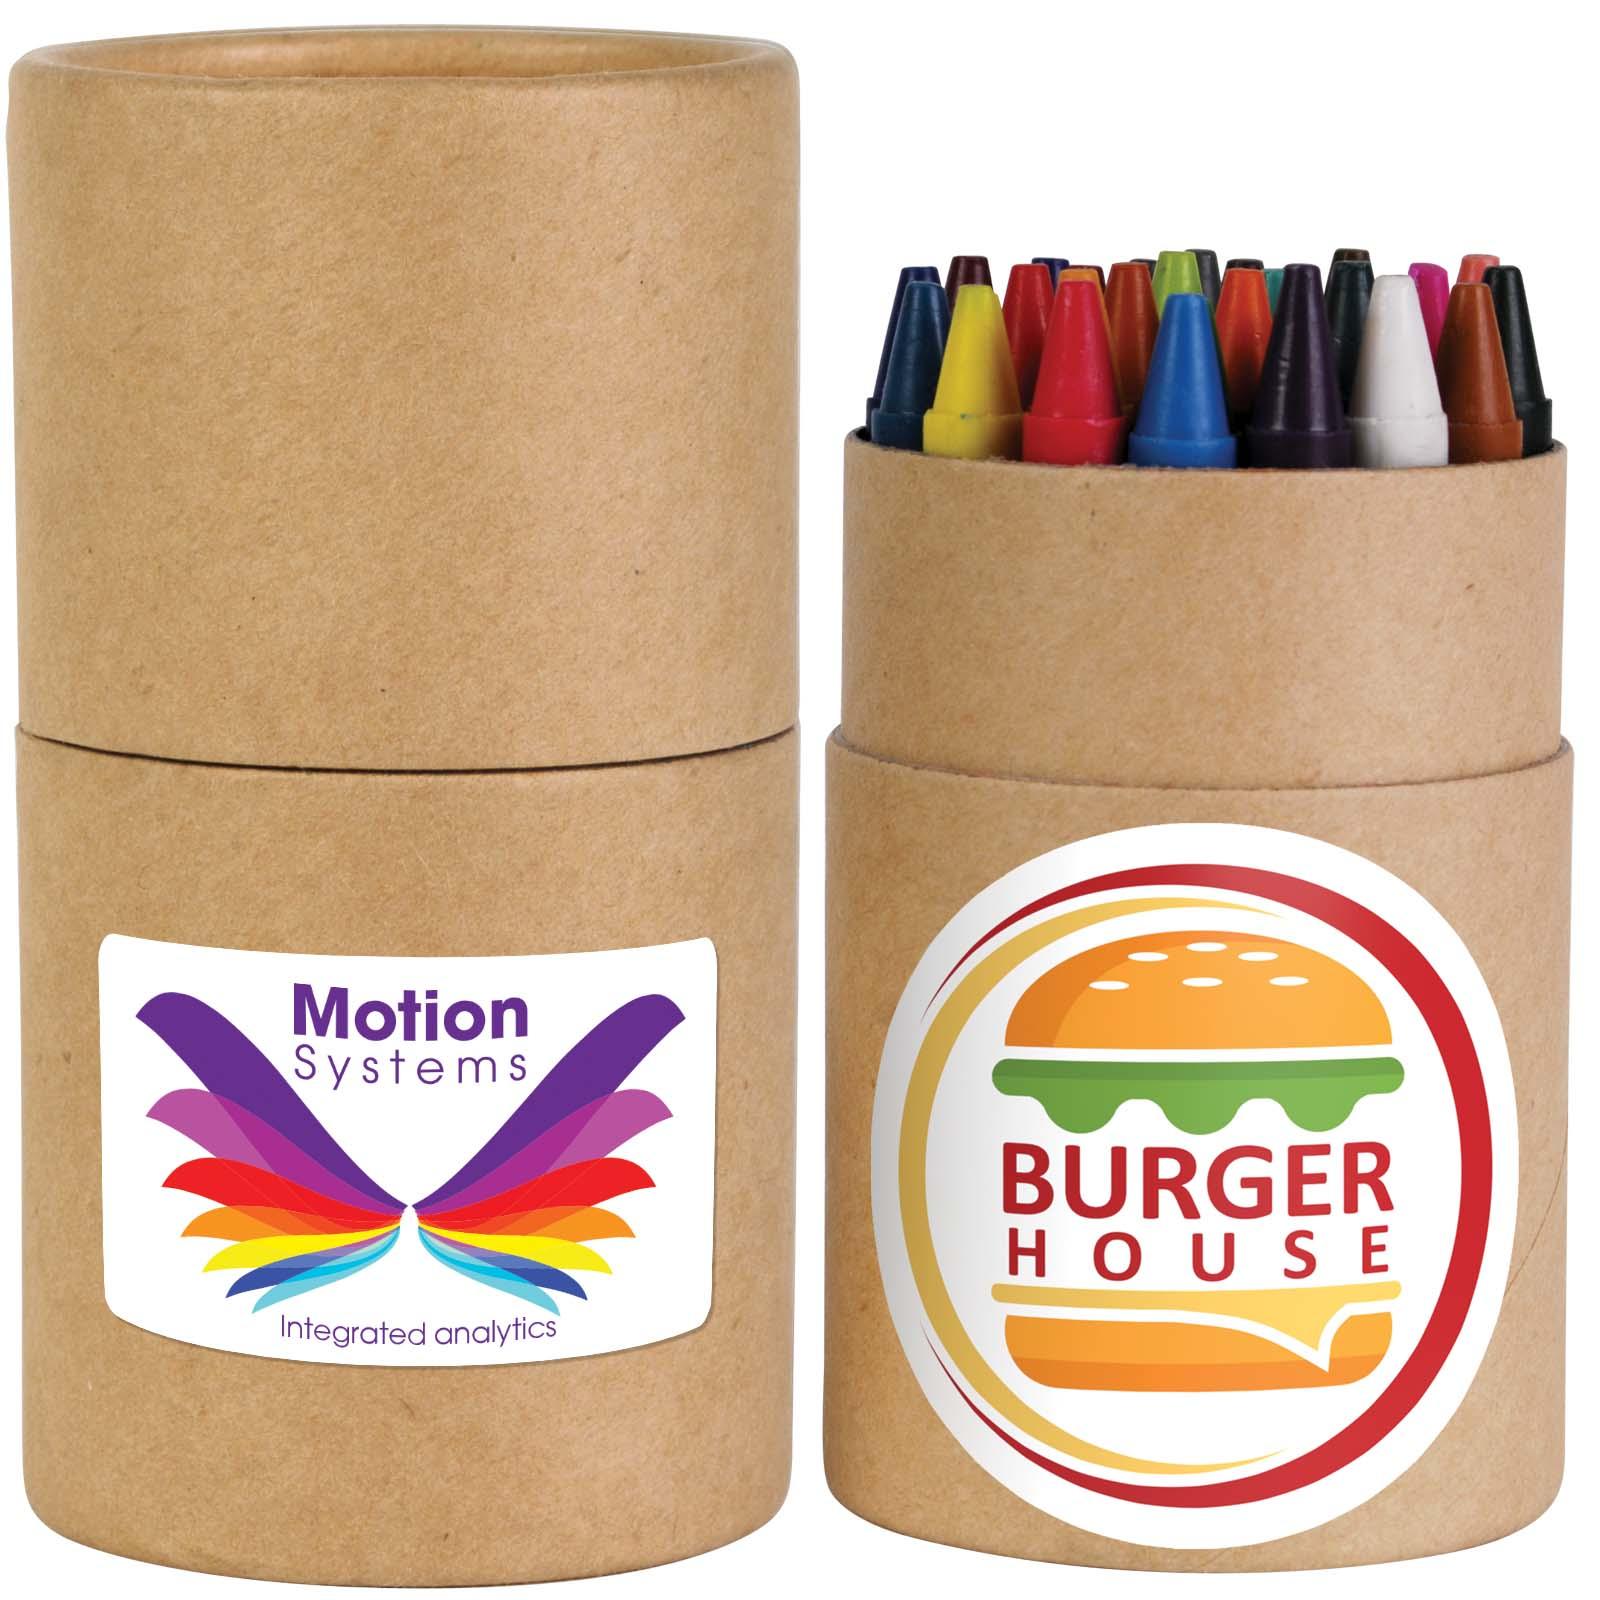 Assorted Colour Crayons in Cardboard Tube - Includes a full colour logo